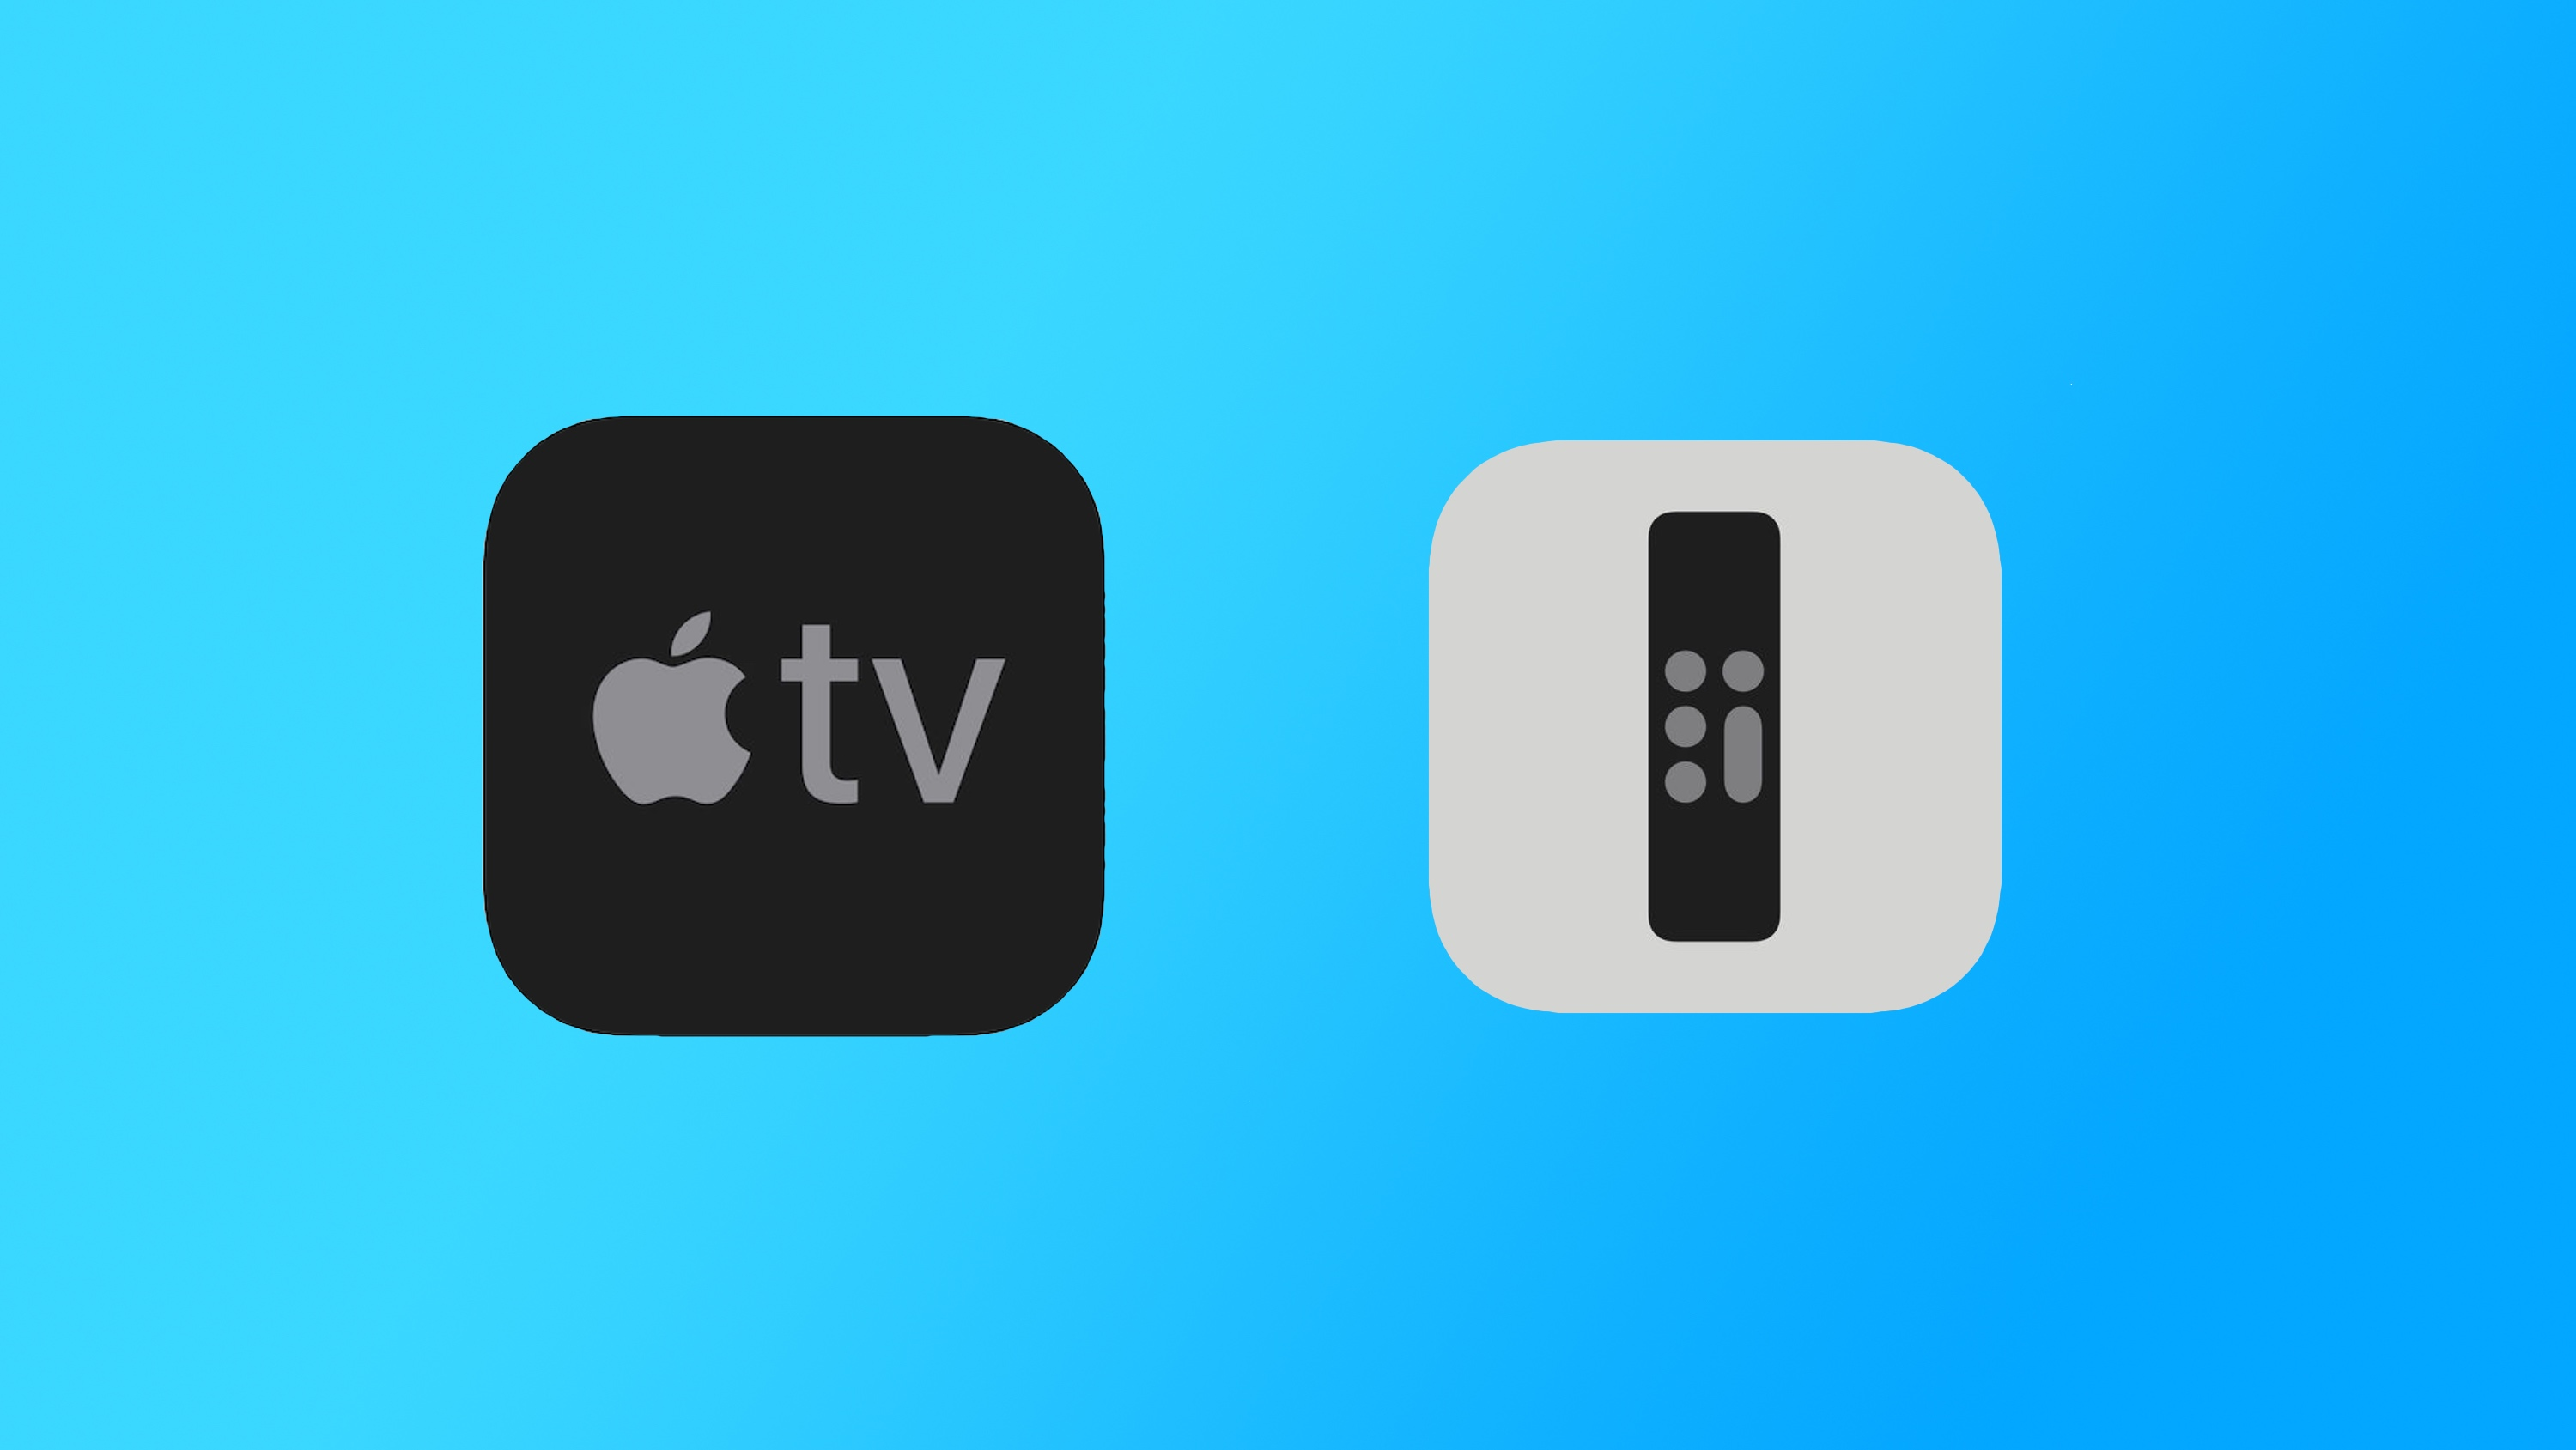 Apple removes its 'TV Remote' app from the App Store as iOS now has an integrated Remote - 9to5Mac